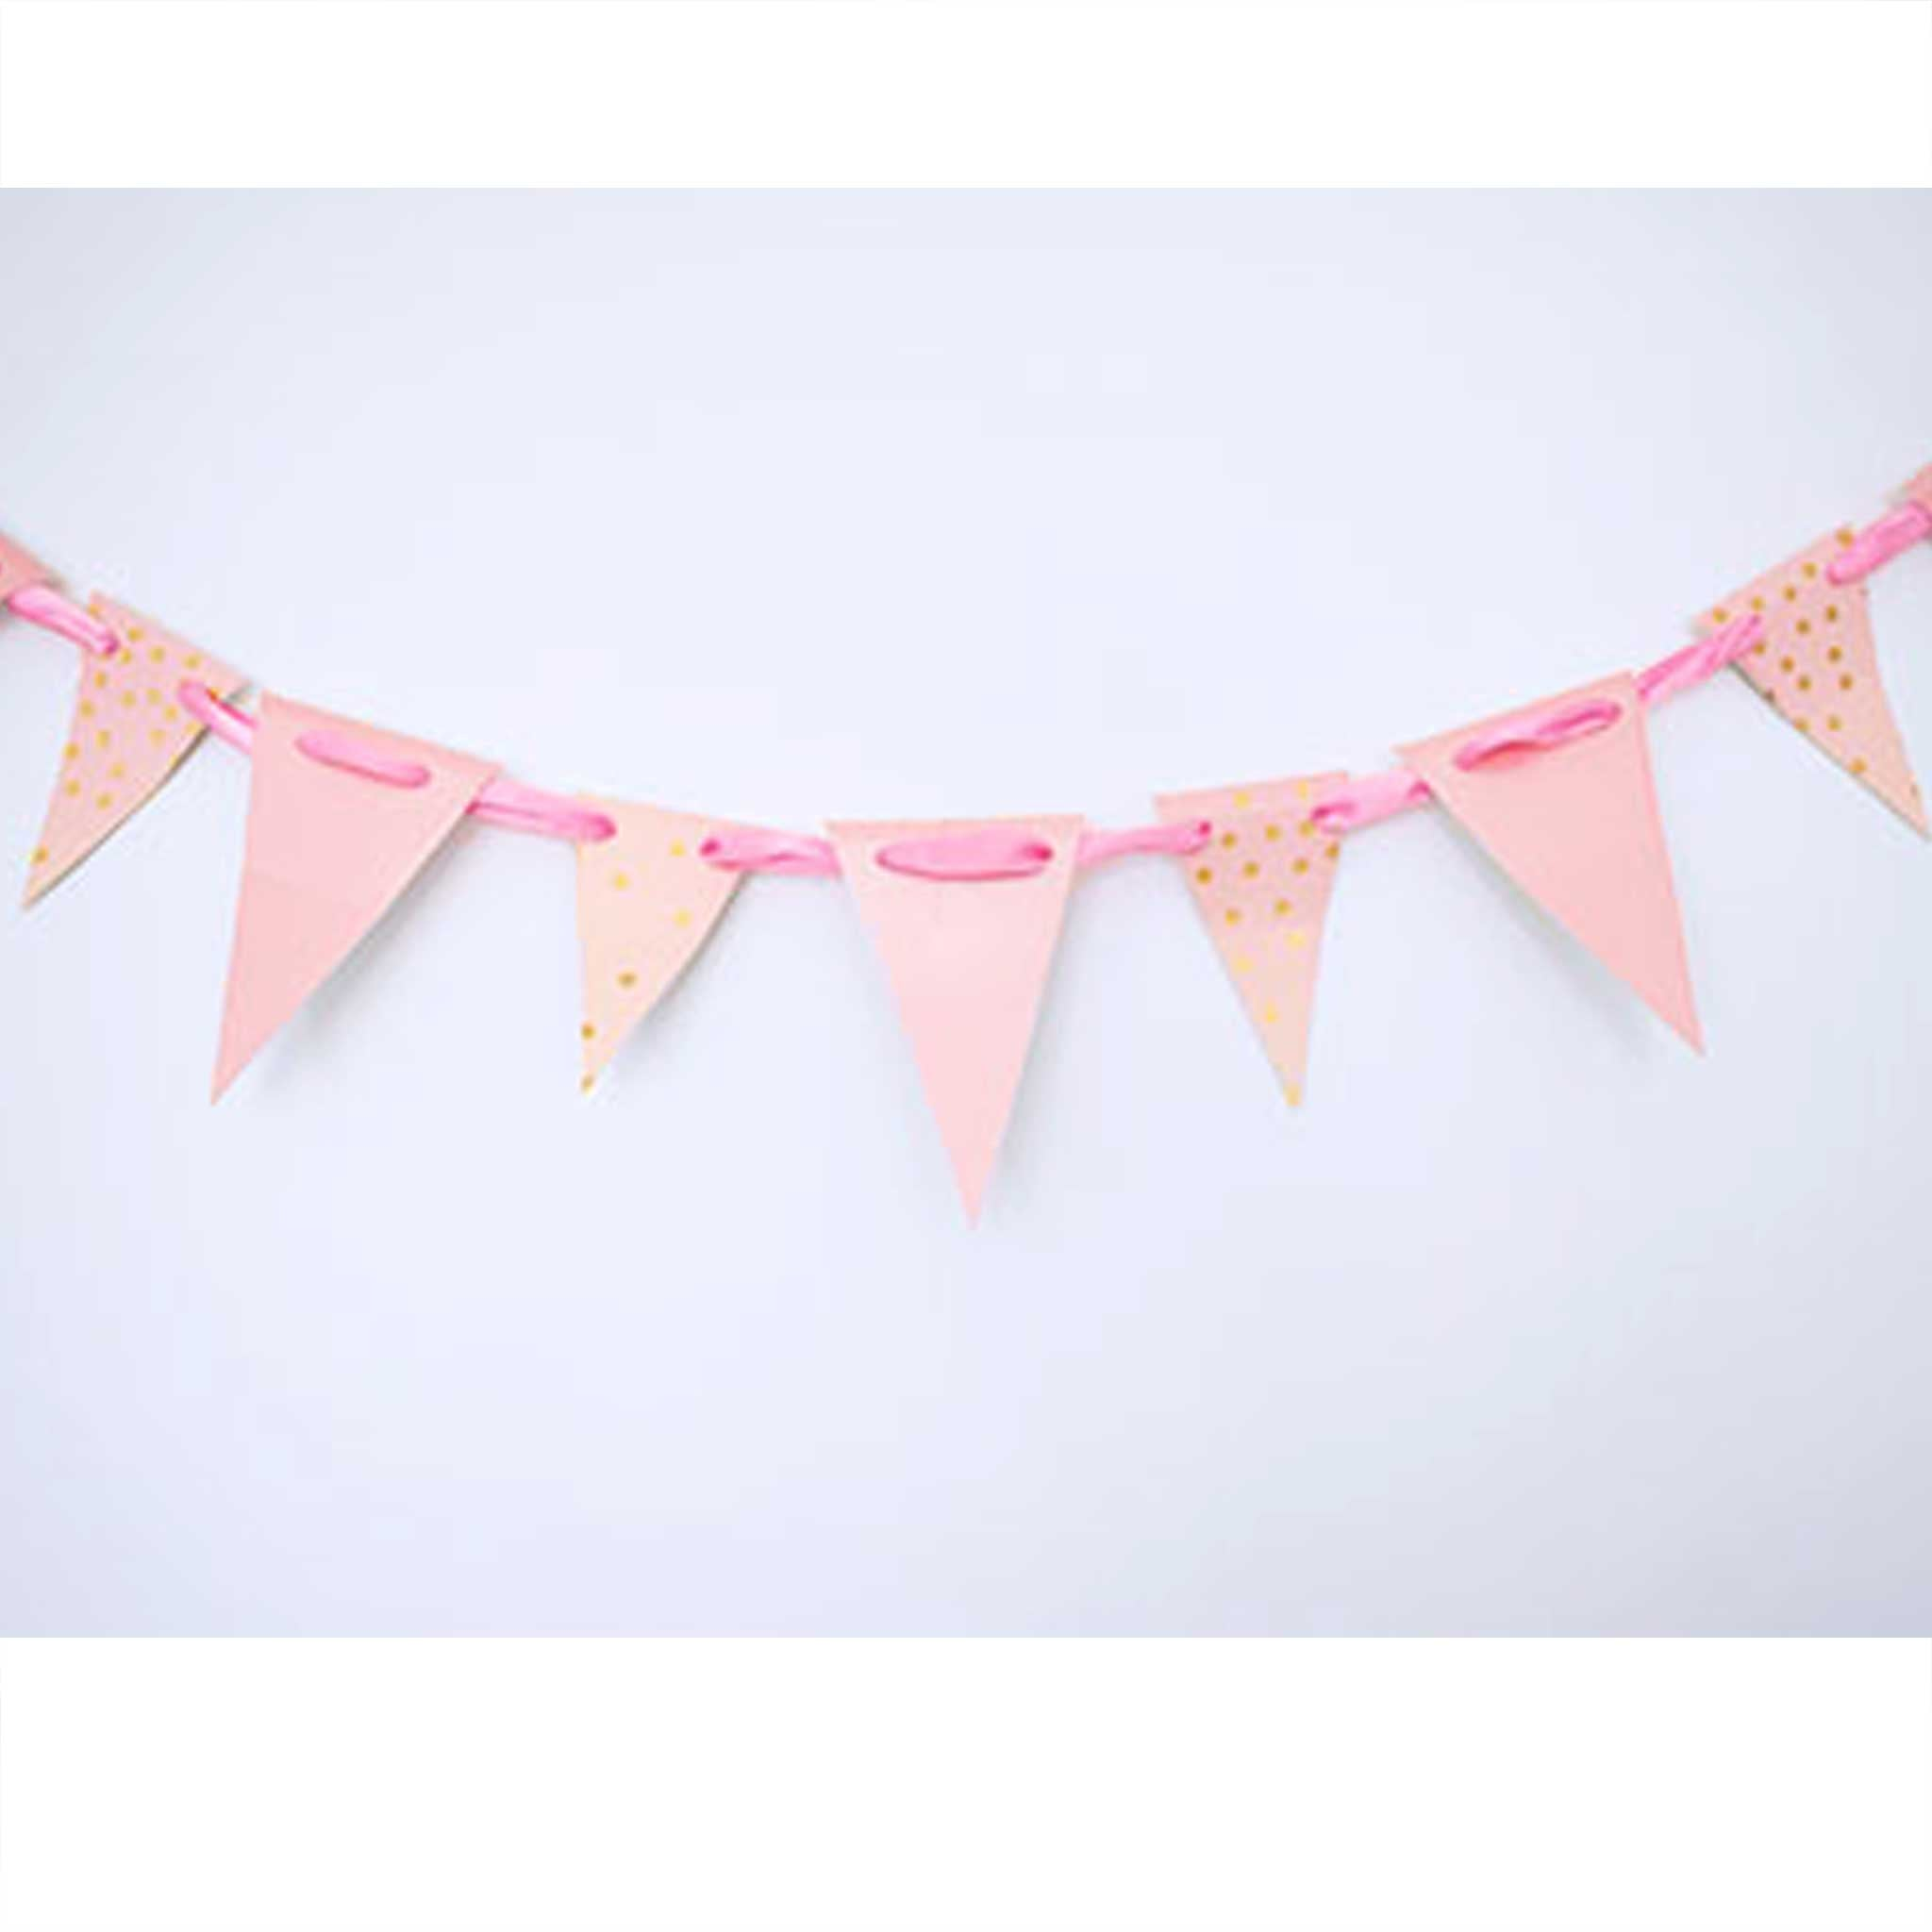 Party Hack: How to DIY Paper Plate Bunting in 4 easy steps